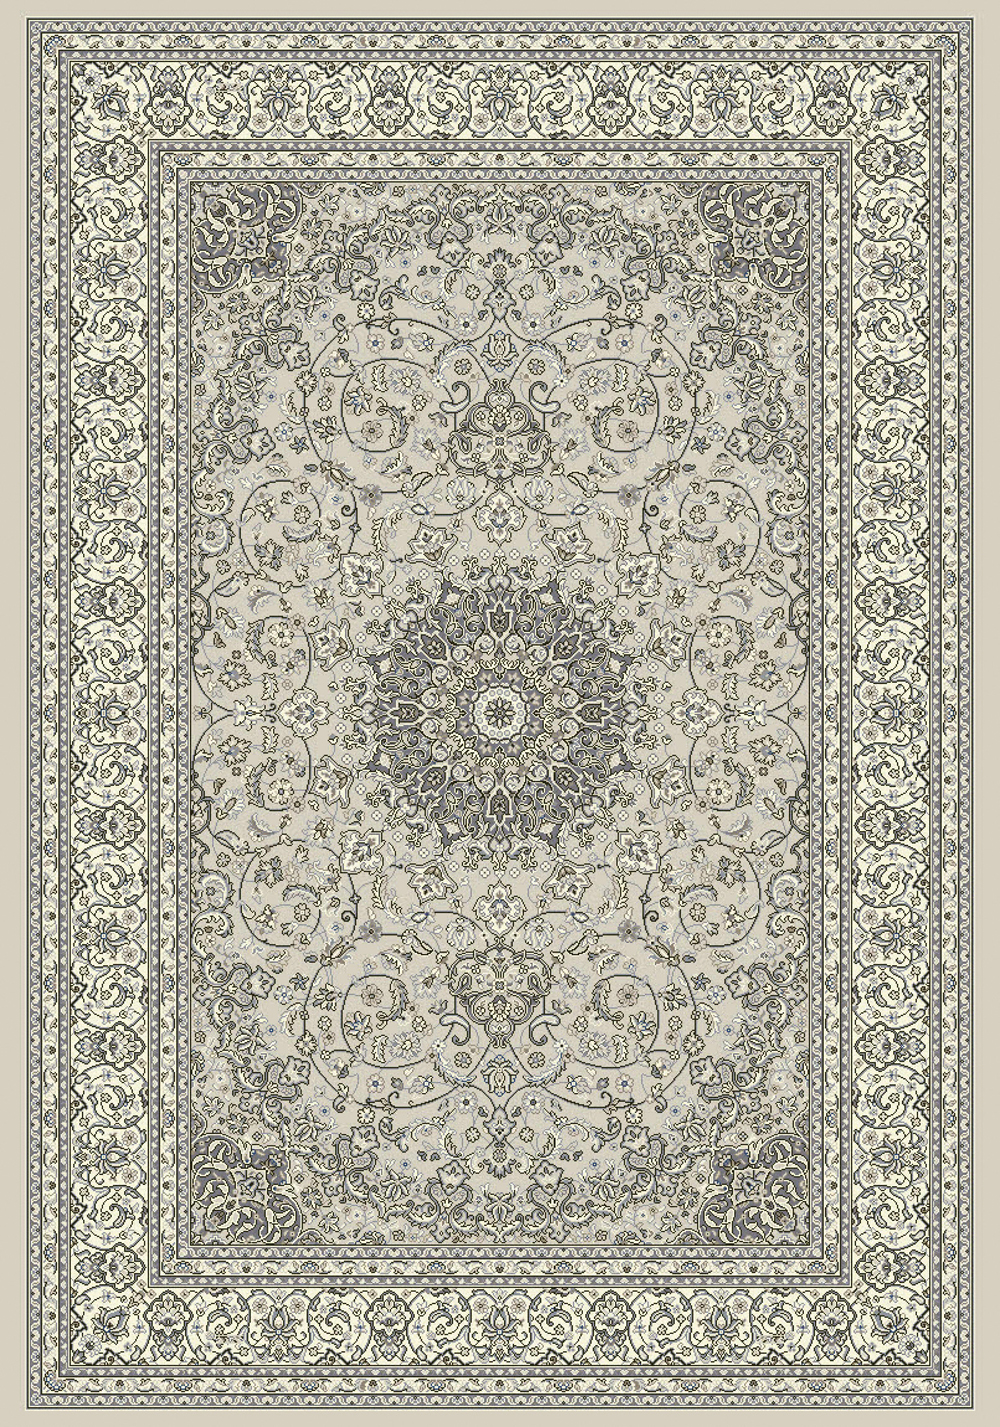 Dynamic ANCIENT GARDEN 57119 SOFT GREY/CREAM Rug